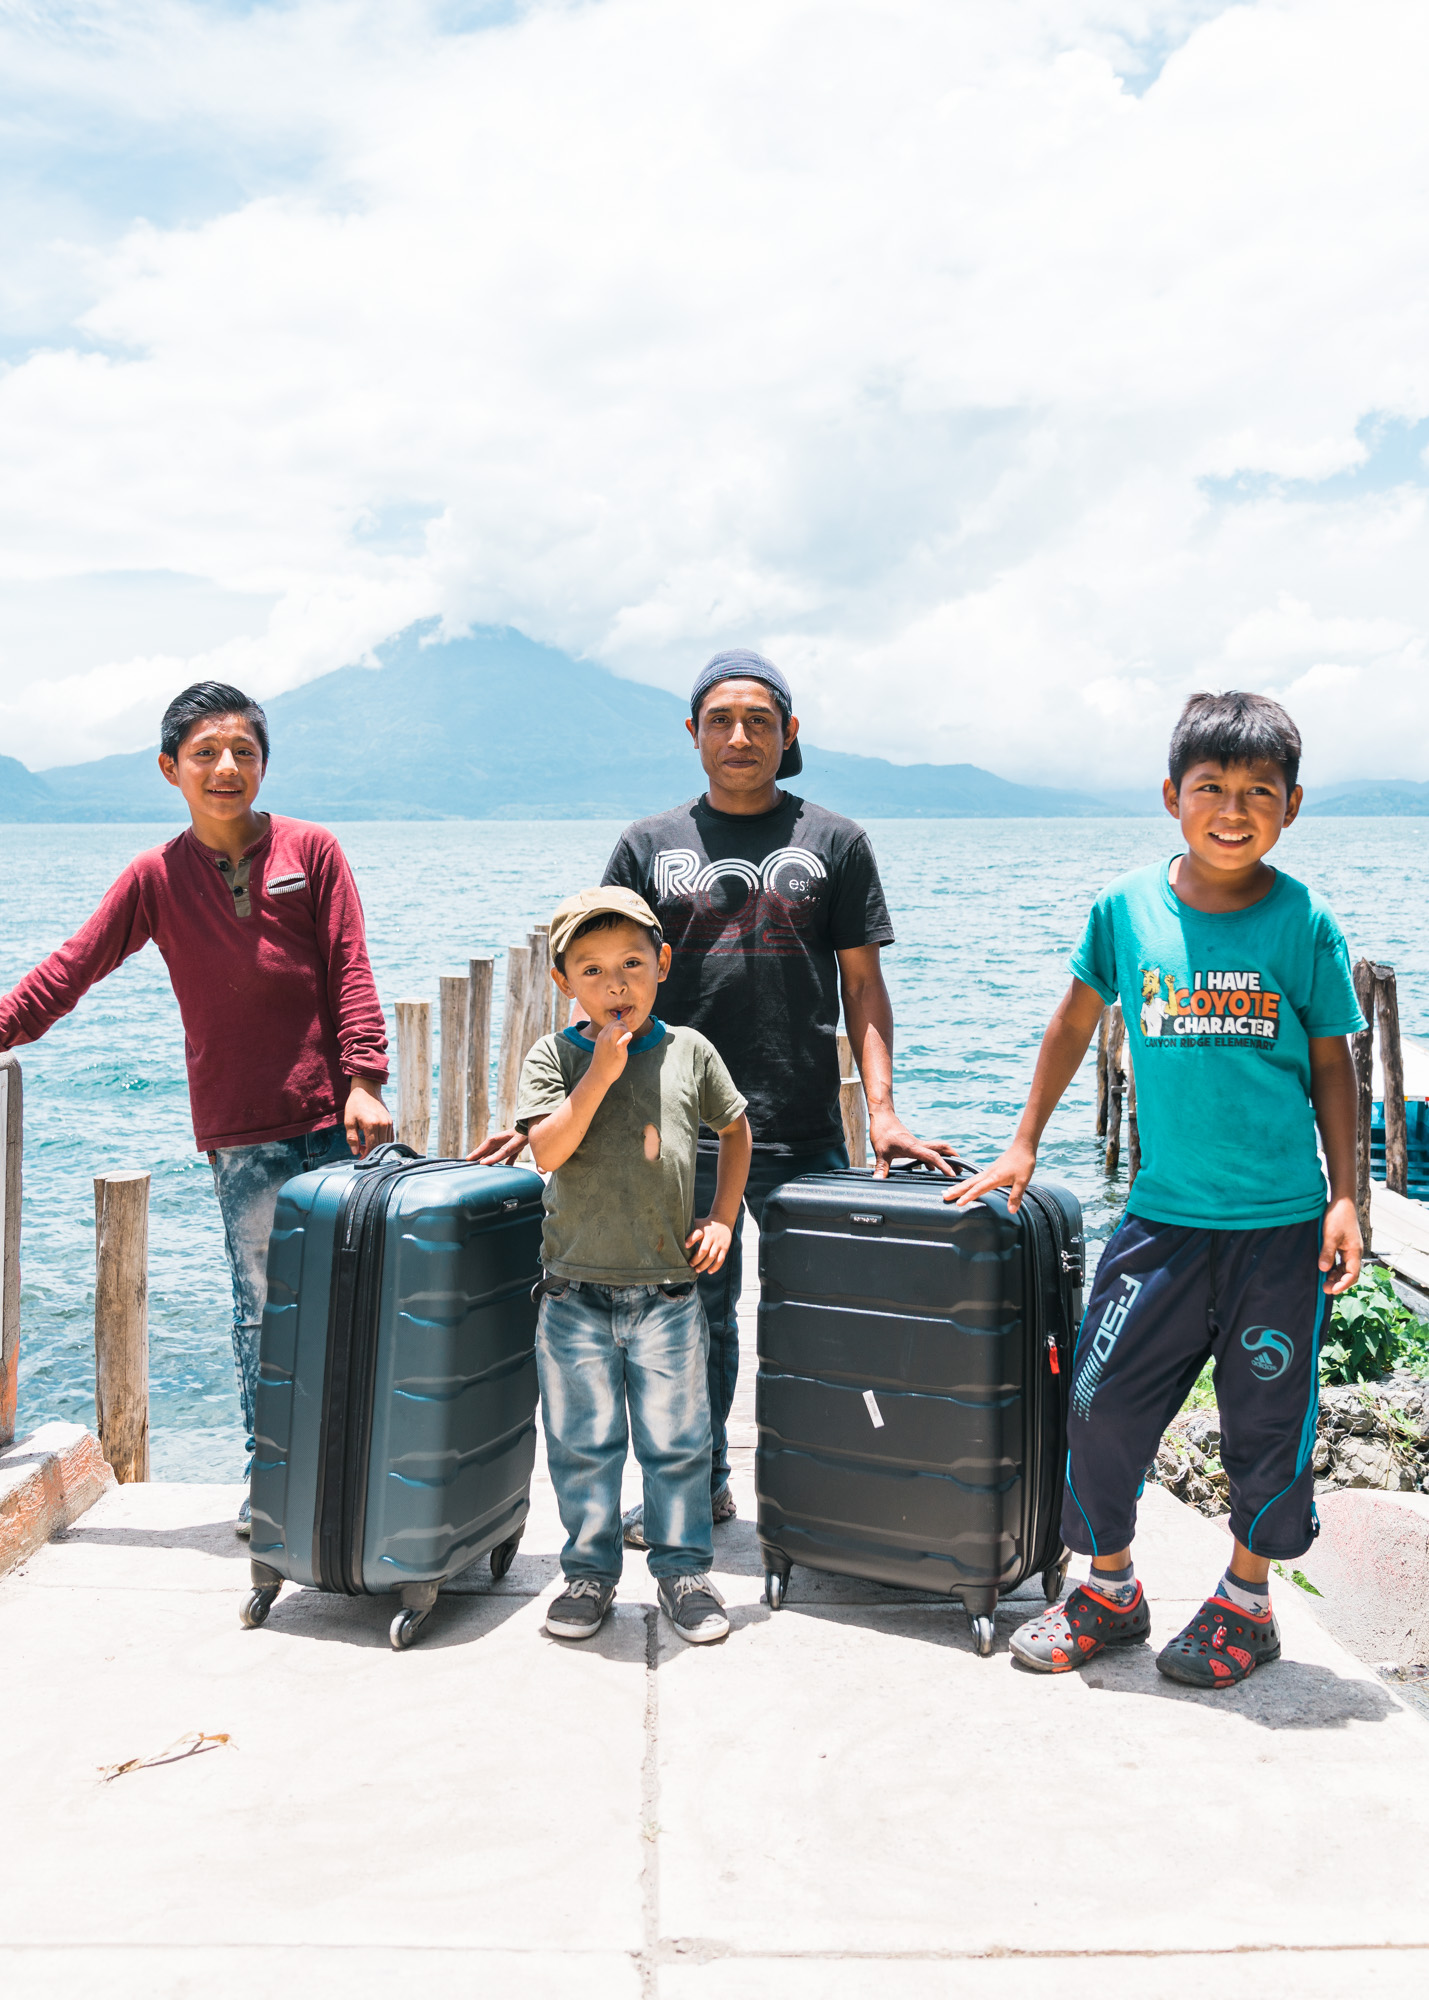 Venturo and his posse of niños in Jaibalito at lake atitlan